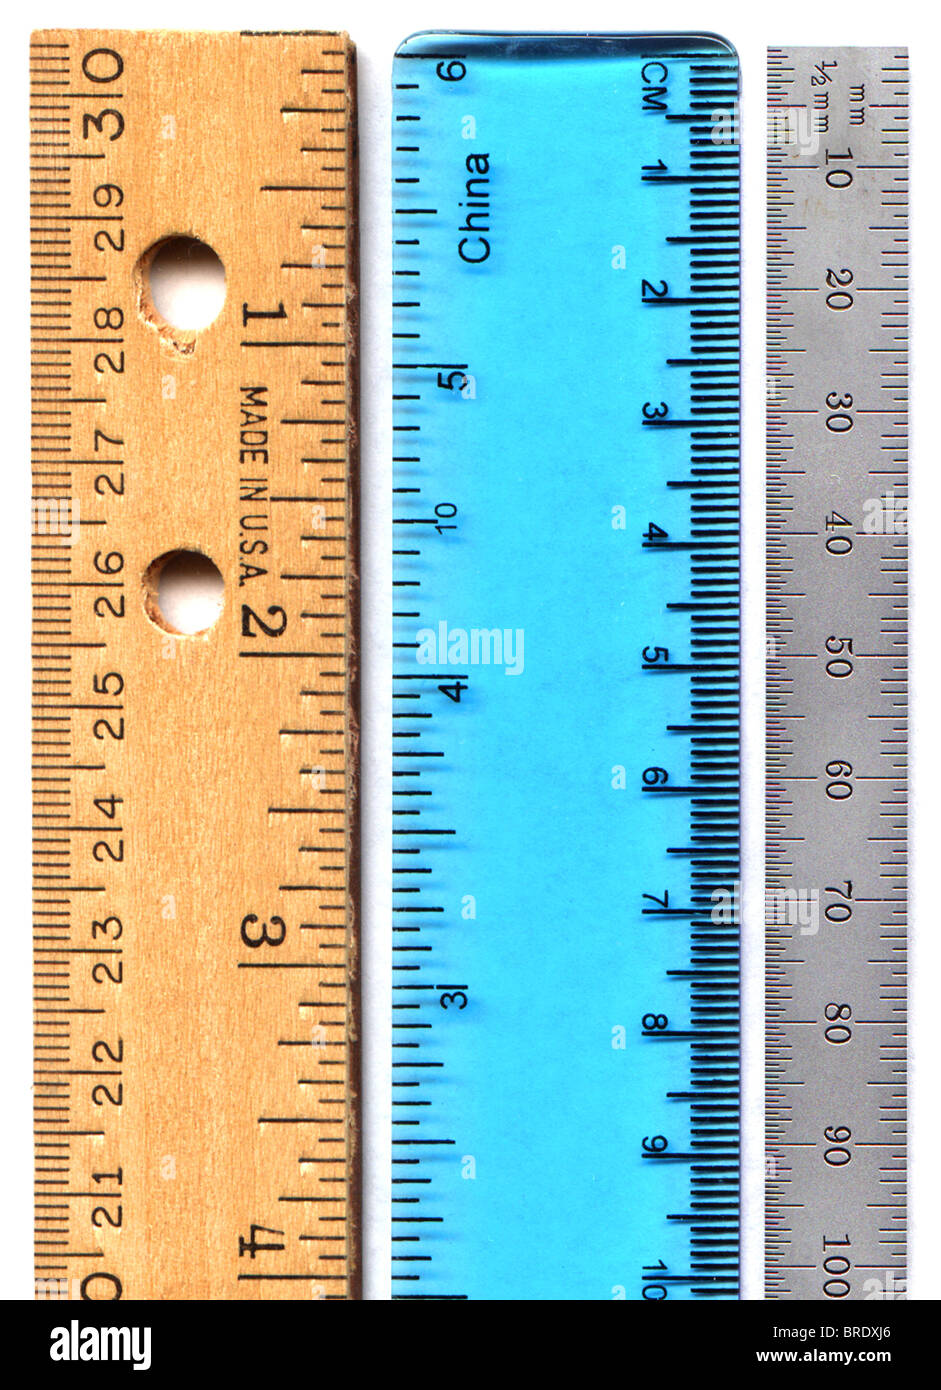 Inch, Centimeter & Millimeter Measuring Scales - Ruler - Stock Image